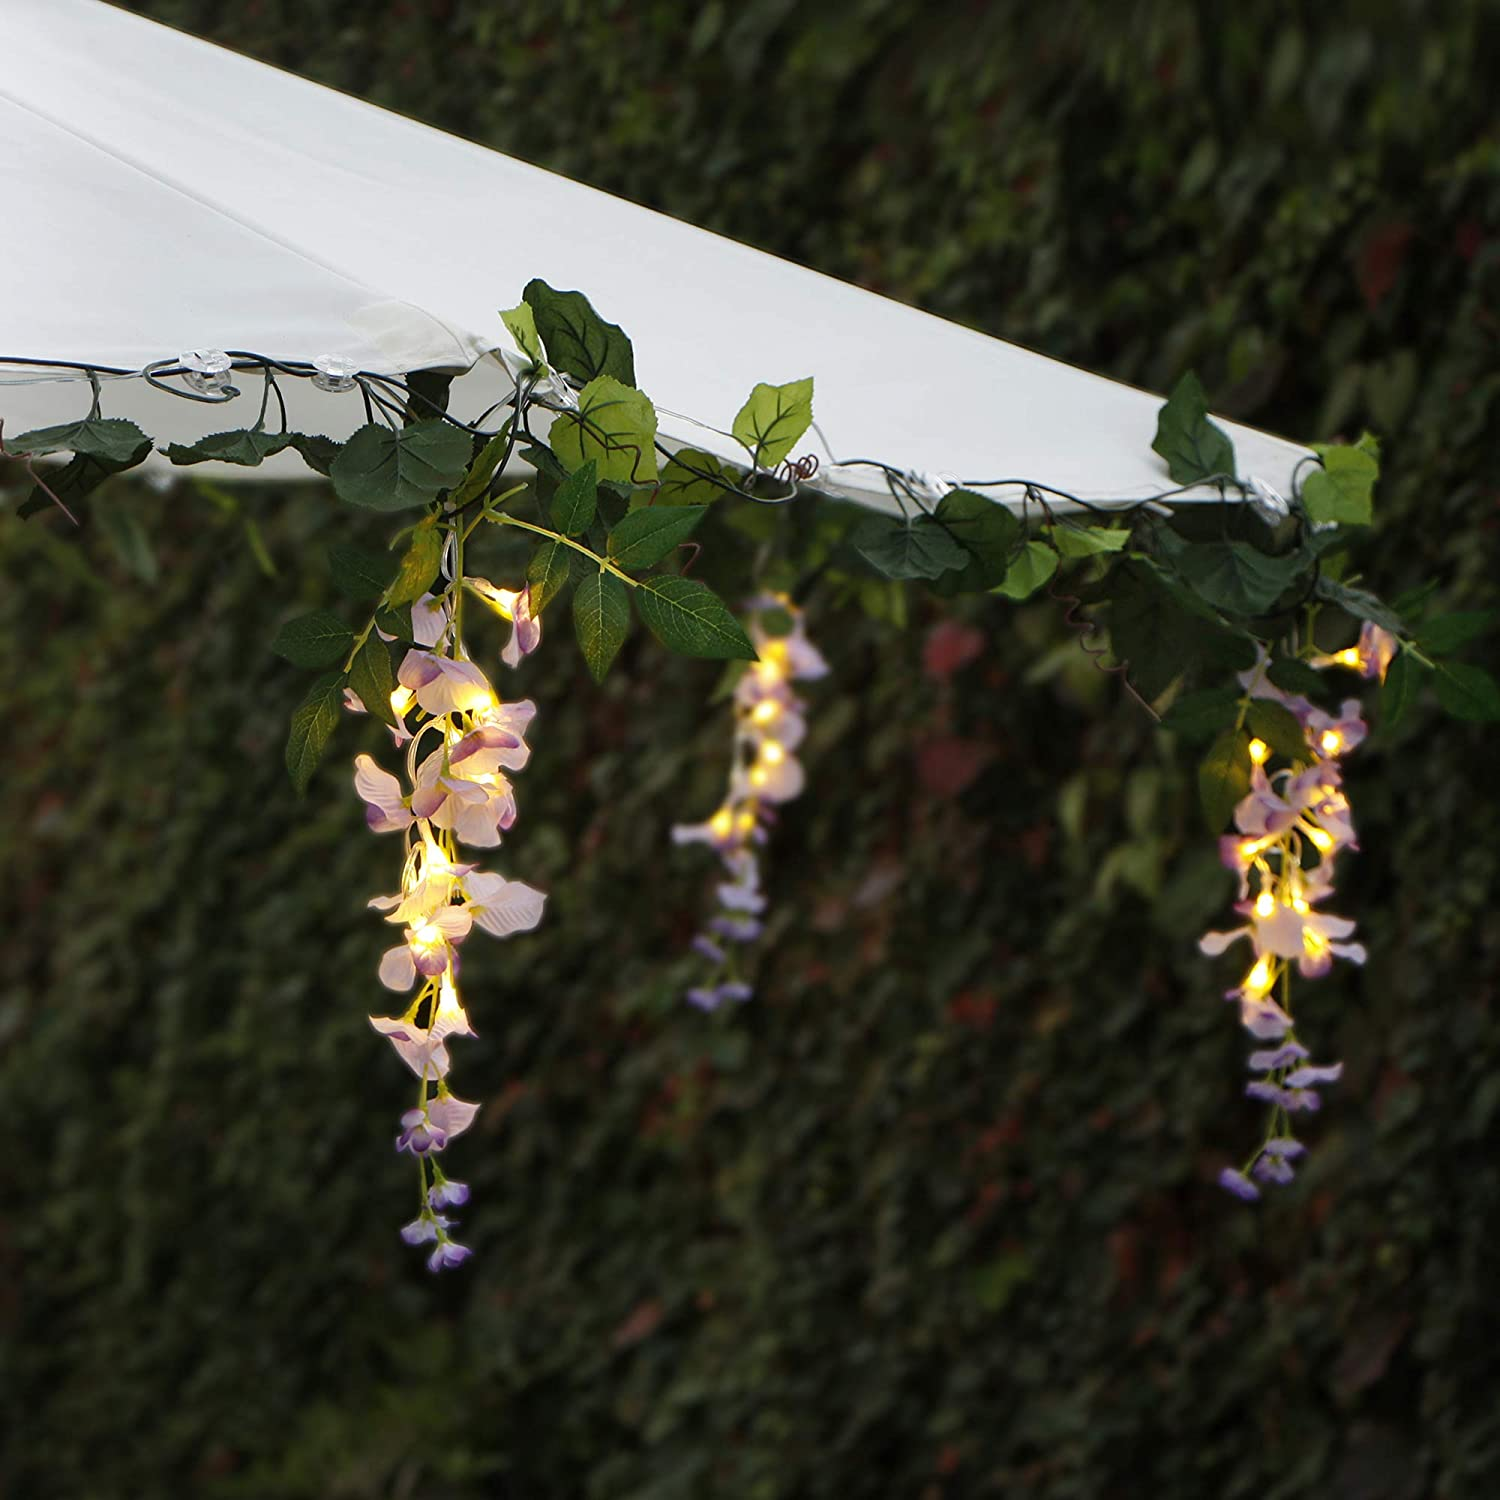 MYHH-LITES Flower Lights Solar Powered with Backup Battery Power and Remote Control, Wisteria String Lights, Umbrella Lights for Home, Garden, Backyard, Pergola, Bedroom, Wedding Decoration